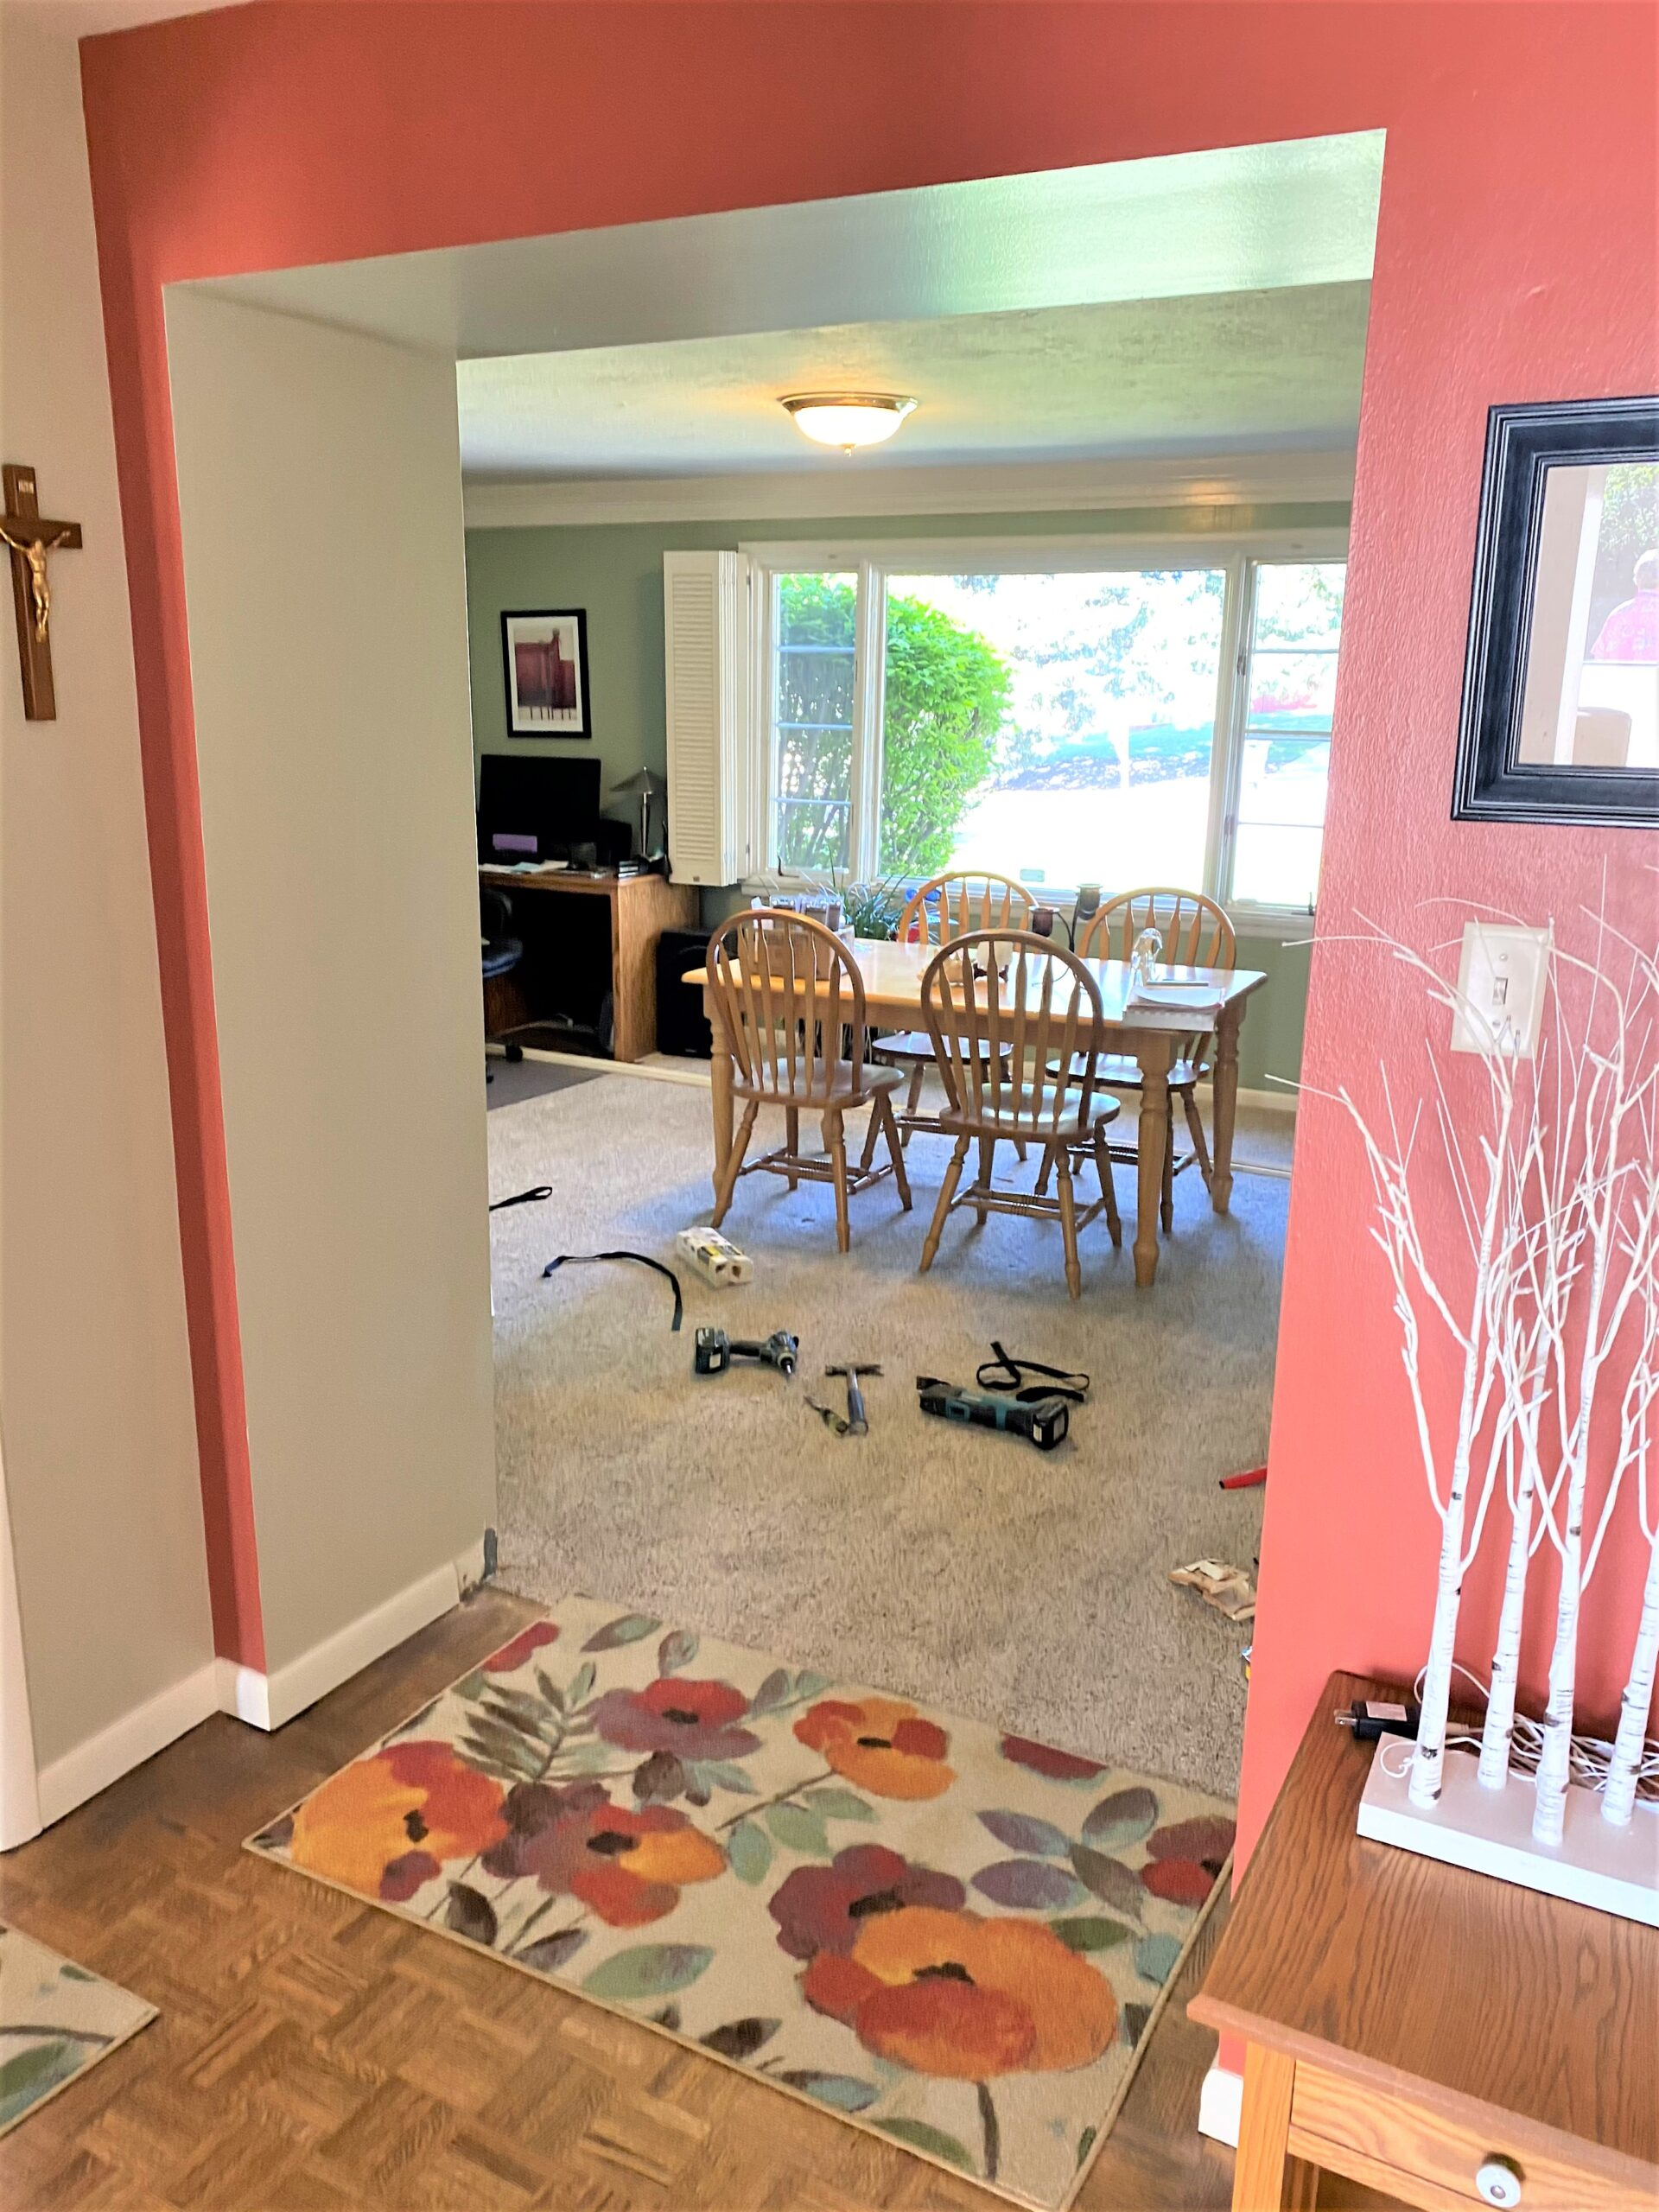 Walkway between kitchen and dining room with floral rug, pine table with 4 chairs, and window